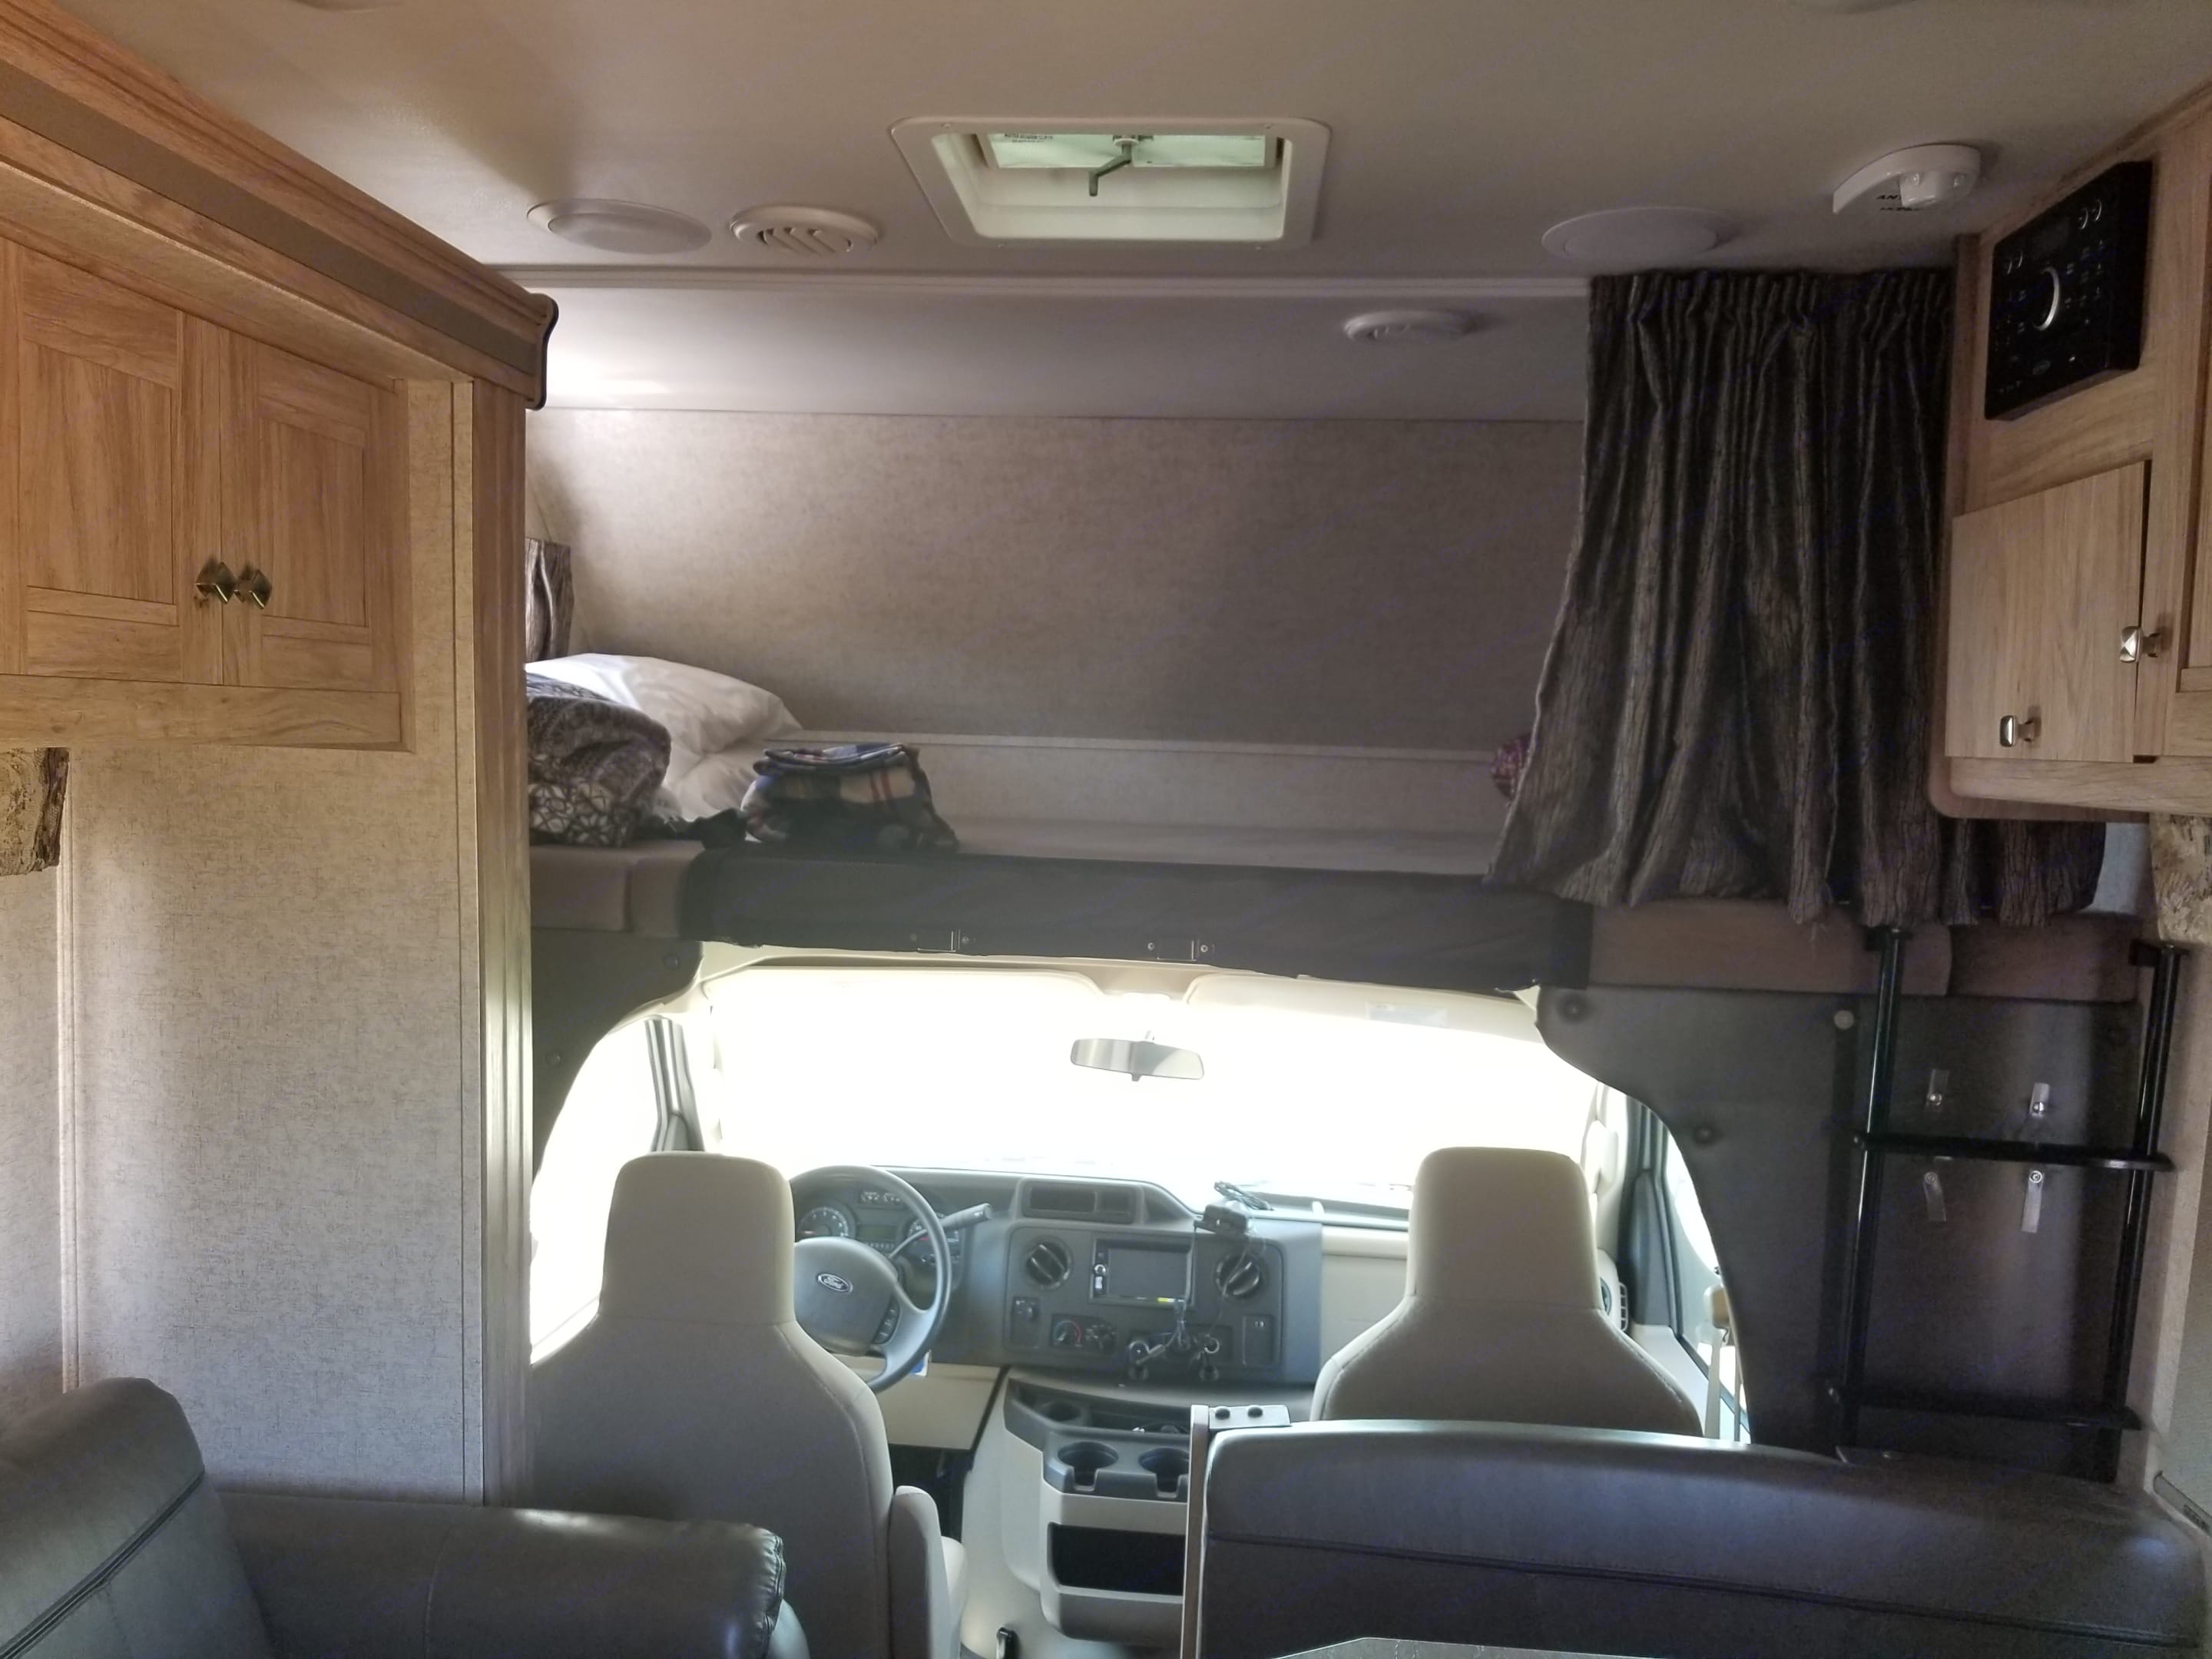 loft bed above drivers seat. sleeps 2. Forest River Forester 2017